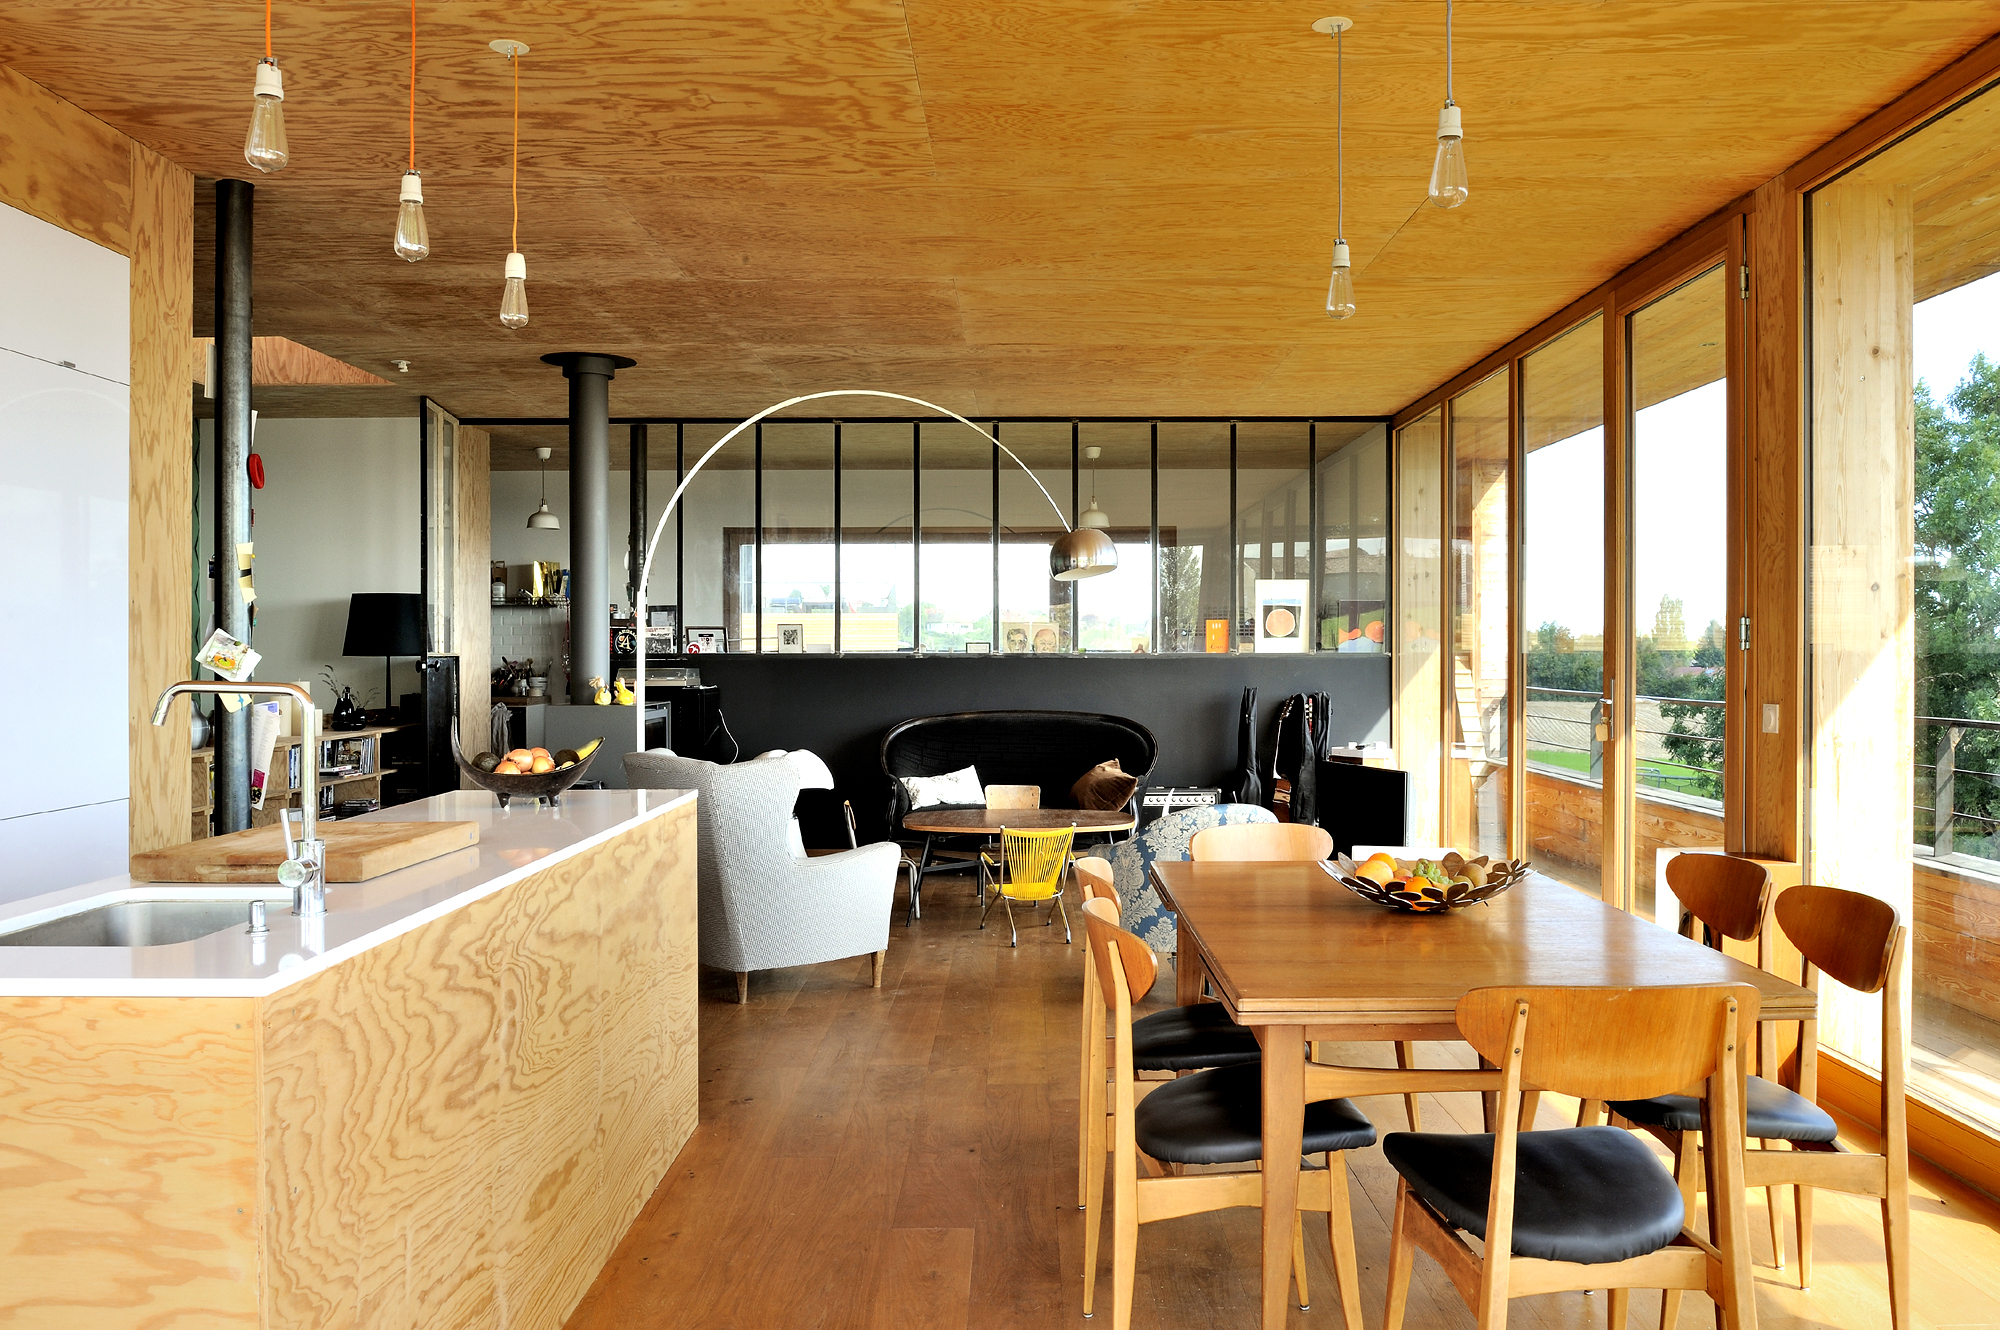 Amenagement interieur maison en bois for Design maison interieur